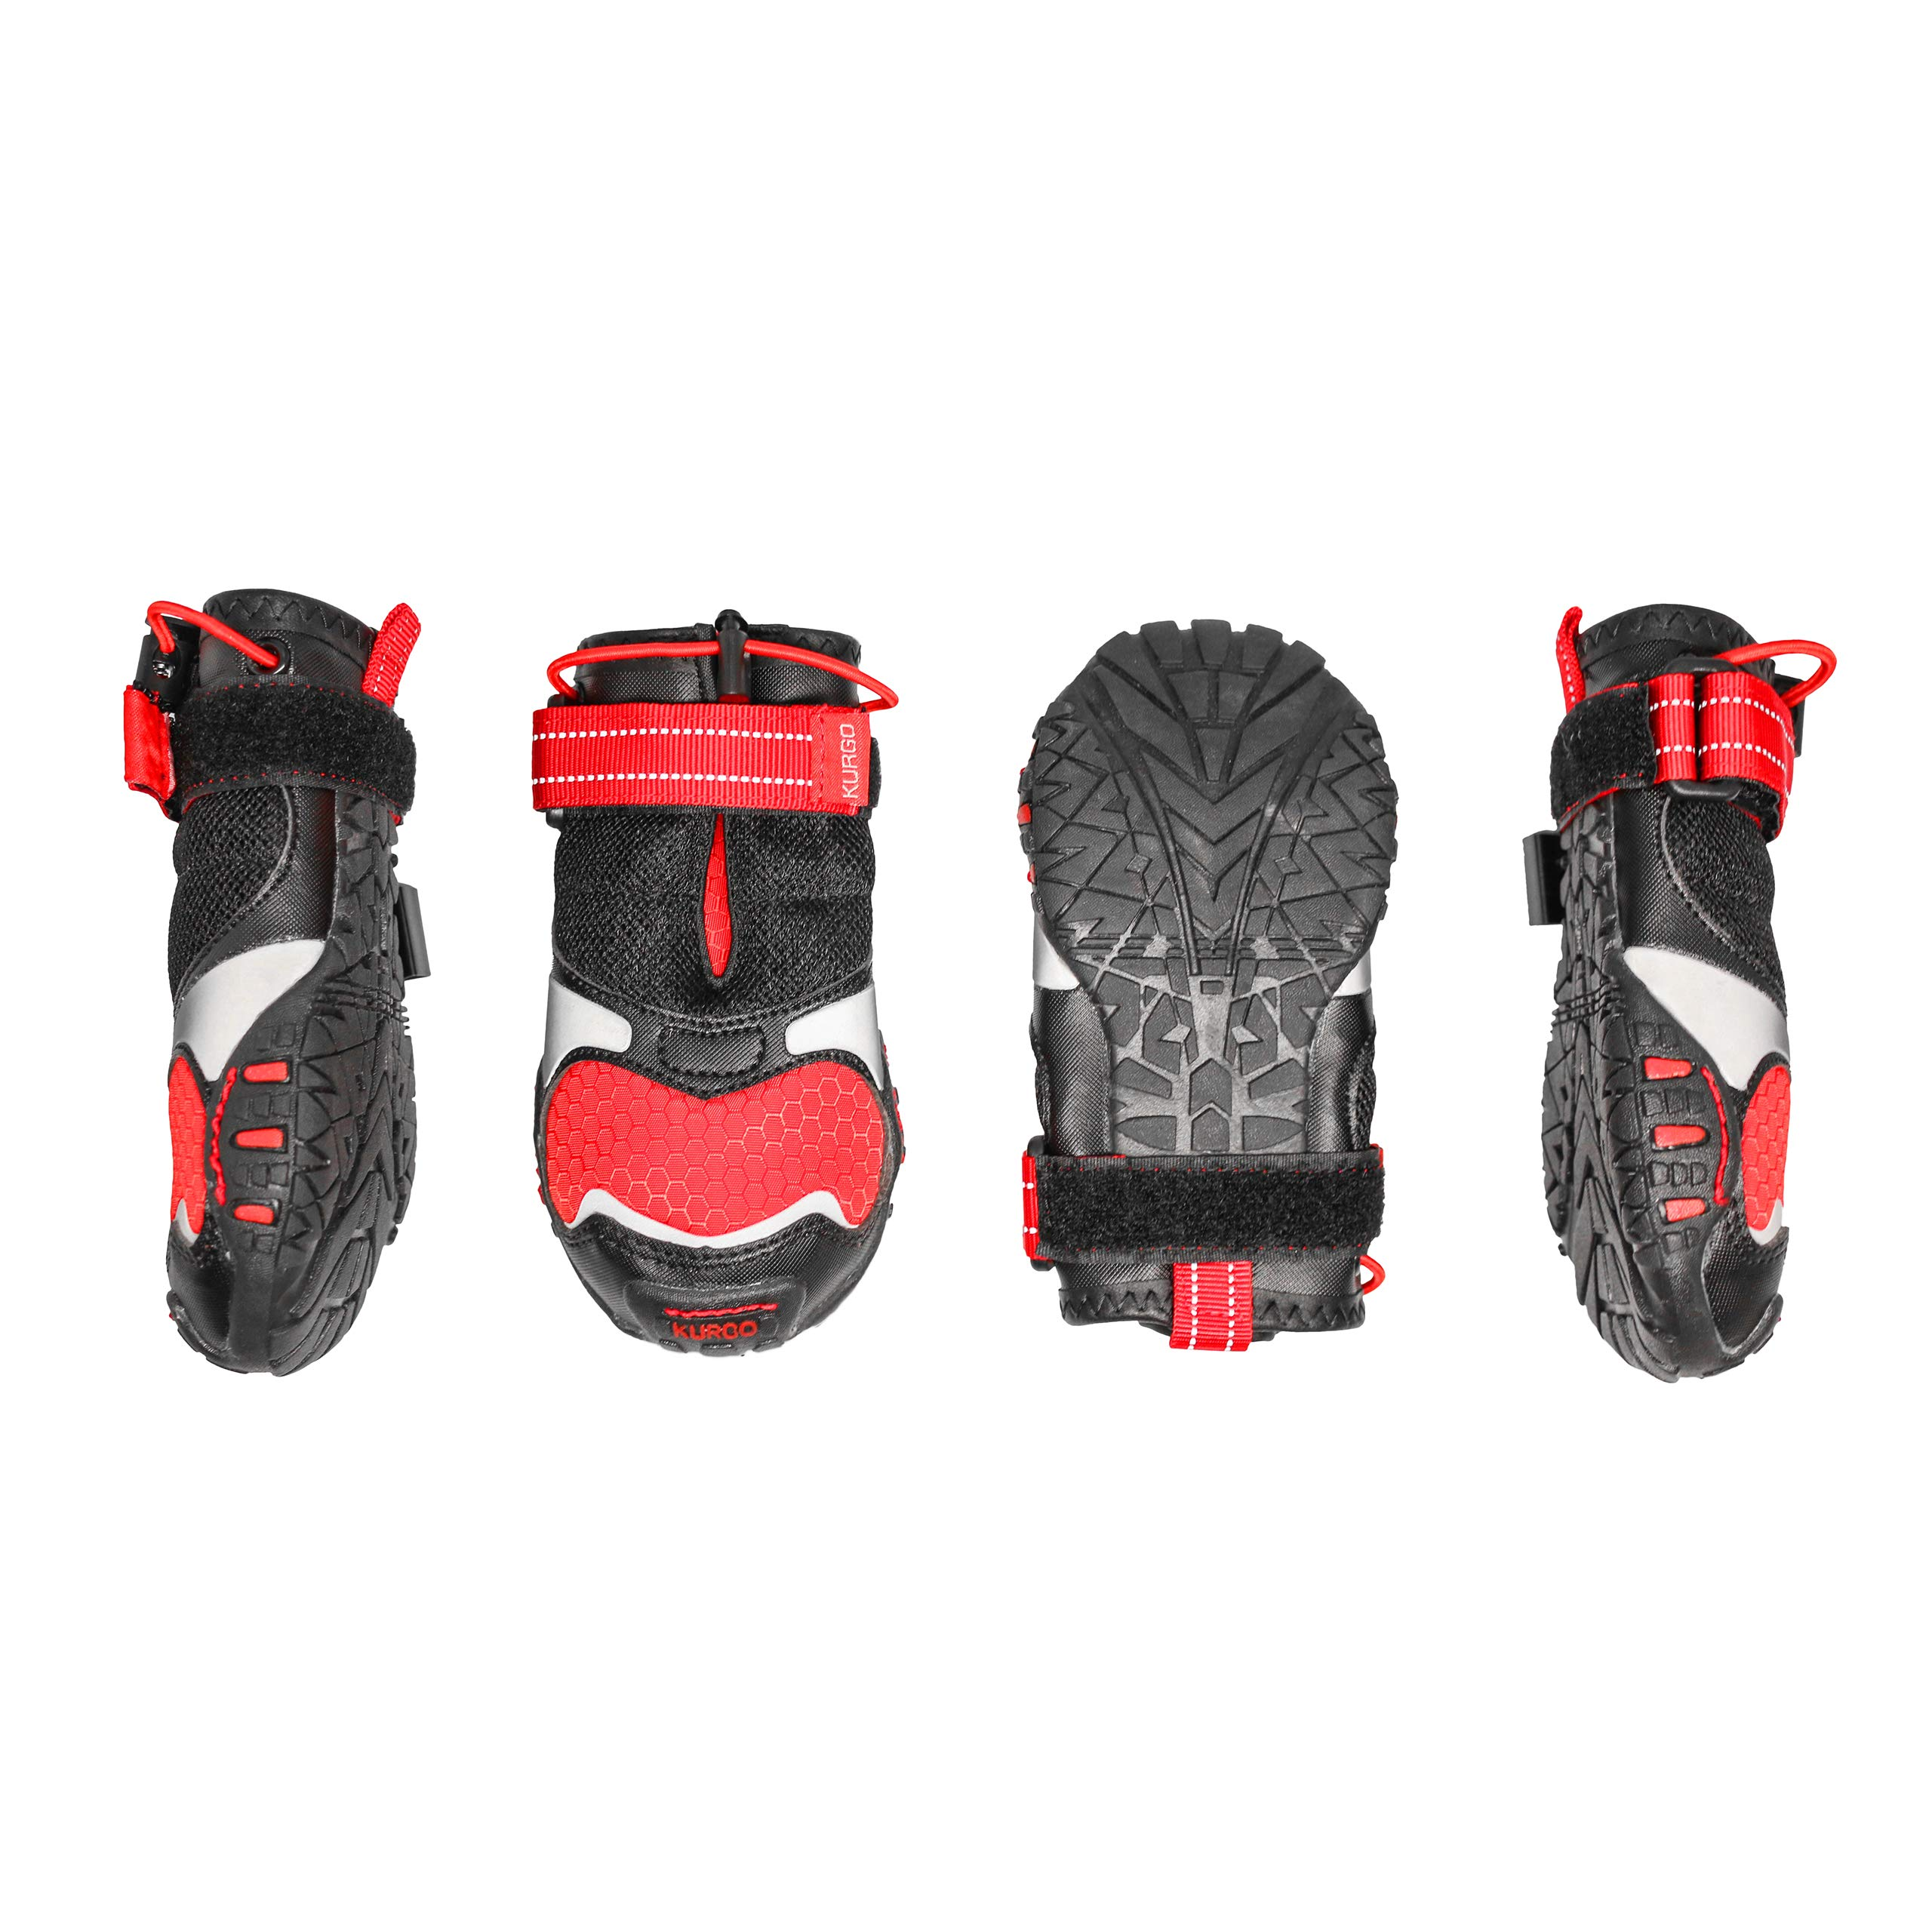 Kurgo Blaze Cross Dog Shoes, Dog Boots, Water Resistant Dog Shoes, All Season Paw Protectors, Reflective Dog Snow Boots, Medium, Red/Black